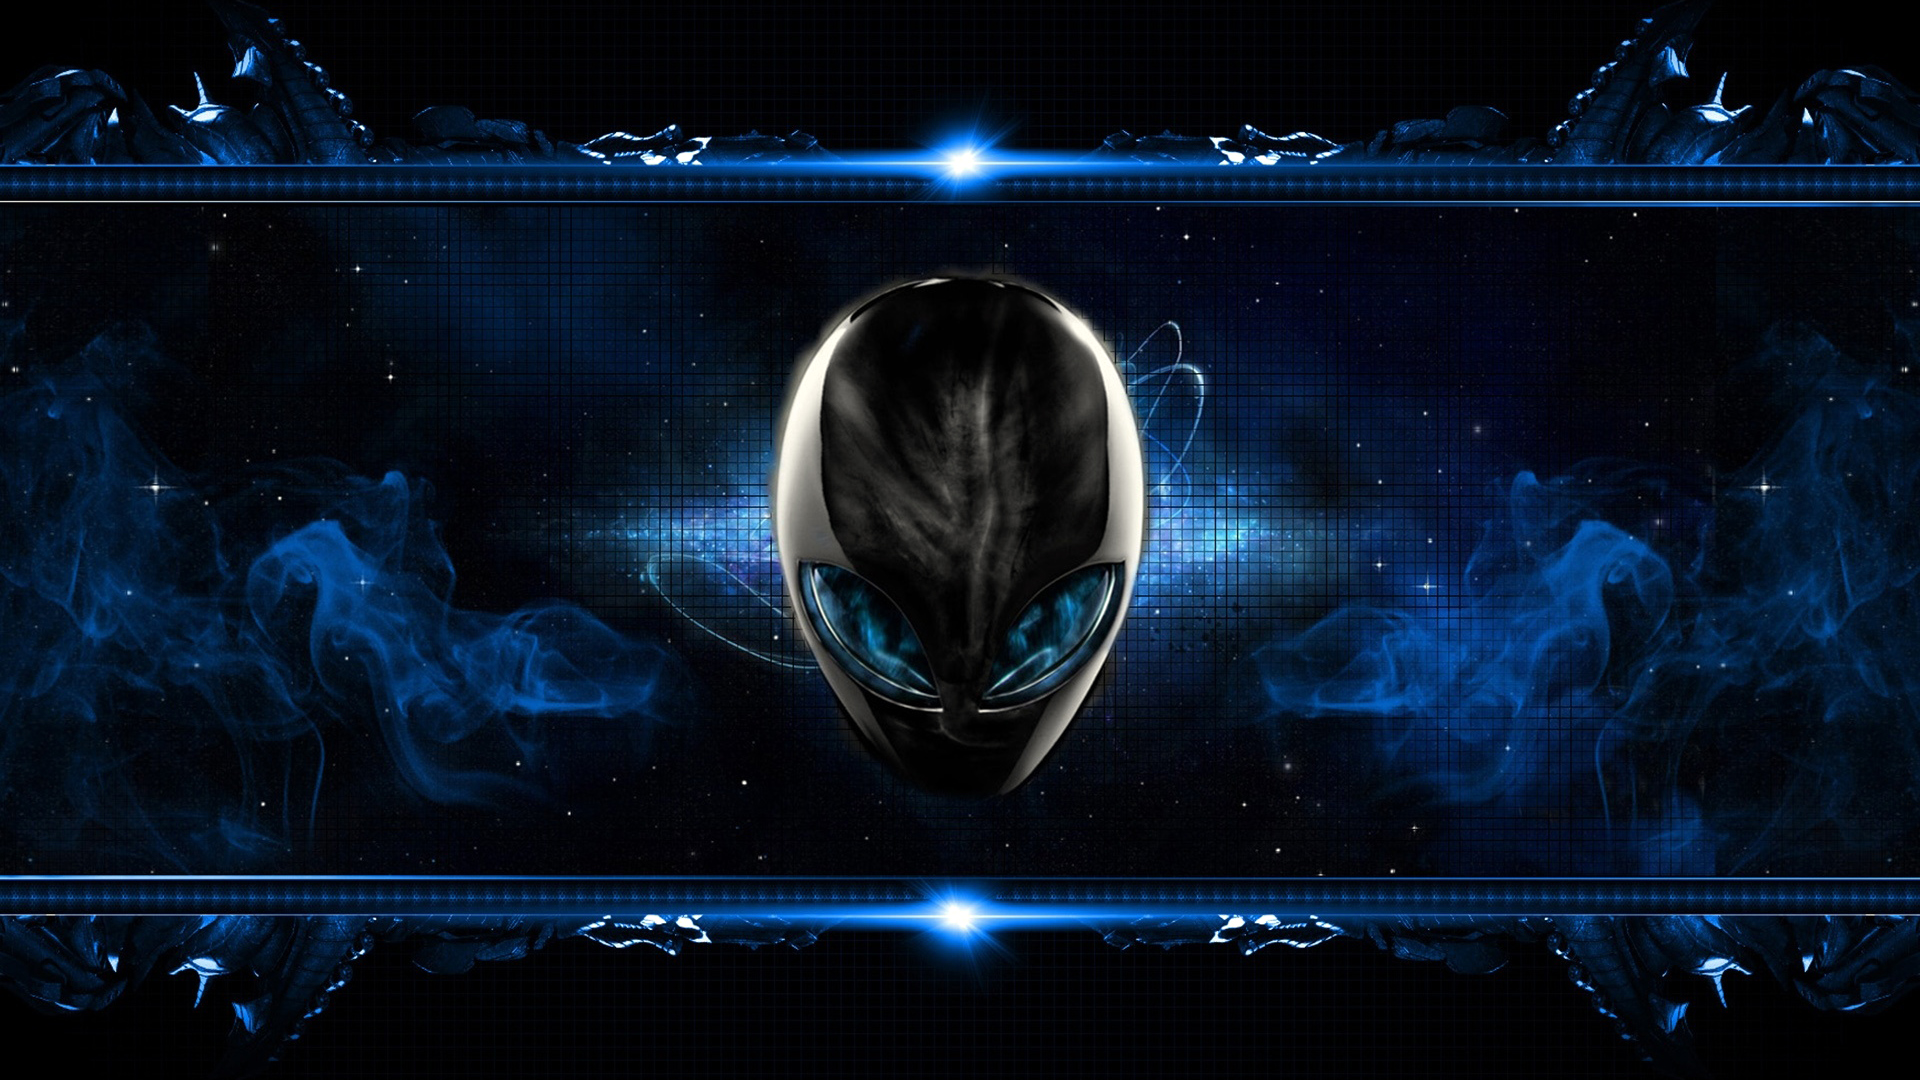 Alienware wallpapers for windows 7 wallpapersafari - To Hd Alienware Wallpapers 1920 1080 Amp Alienware Backgrounds